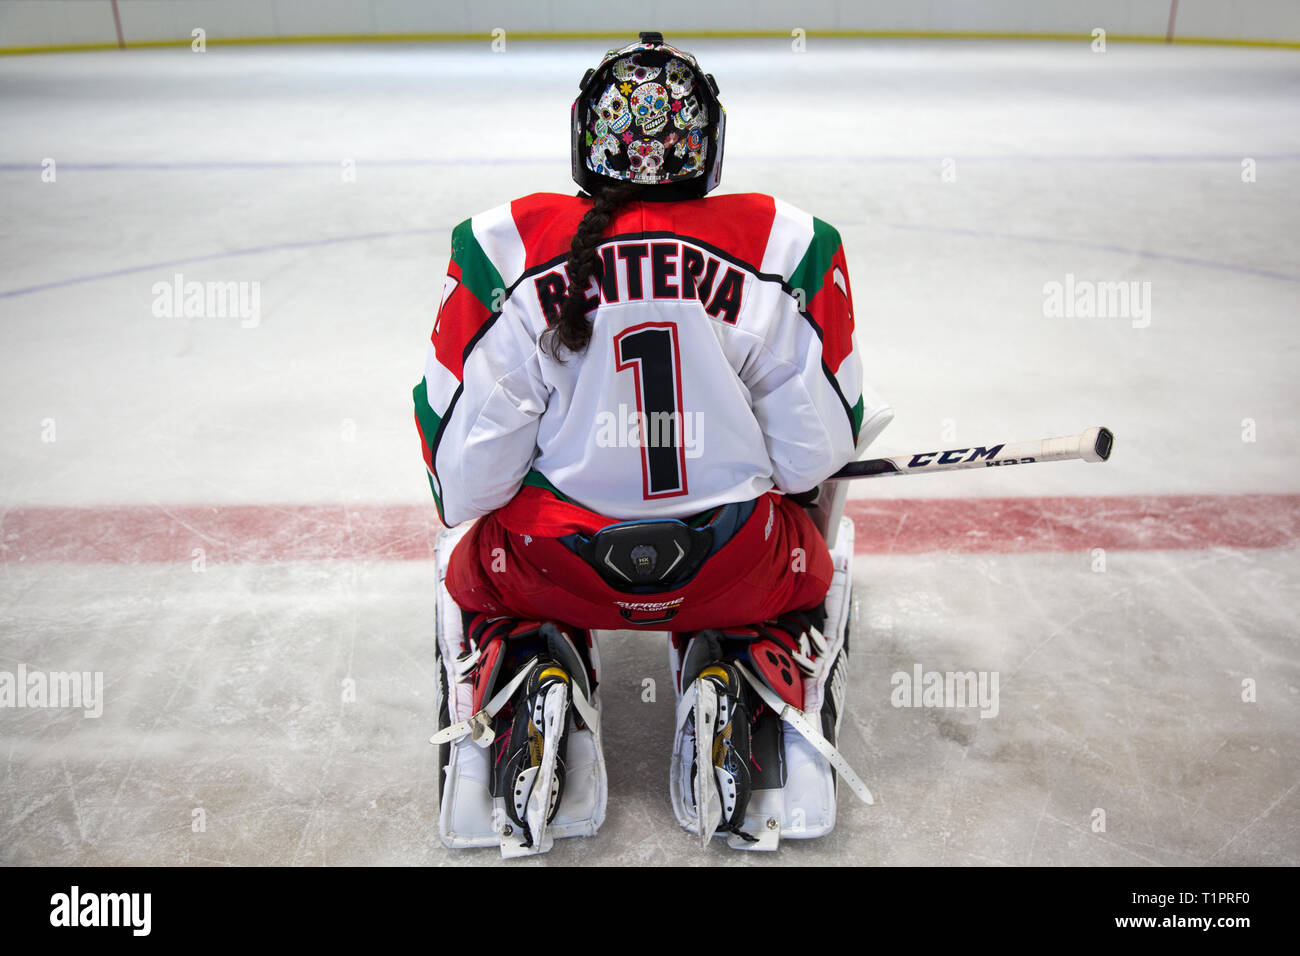 Mónica Evangelina Renteria Peñafort, 31, one of the goalkeepers of the Selección femenil de México de hockey sobre hielo, after a training session over the course of a 3-day intensive training week-end at the Winter Sports Center Metepec in Metepec, State of Mexico, Mexico on March 9, 2019. Mónica had her helmet customized in Canada with skulls reminiscent of the traditional Day of the Dead festival in Mexico. Mónica lives in Campestre Churubusco neighborhood in Mexico City, with her family. She studied gastronomy and culinary art. She is now a coach to goalkeepers at different ice hockey club Stock Photo